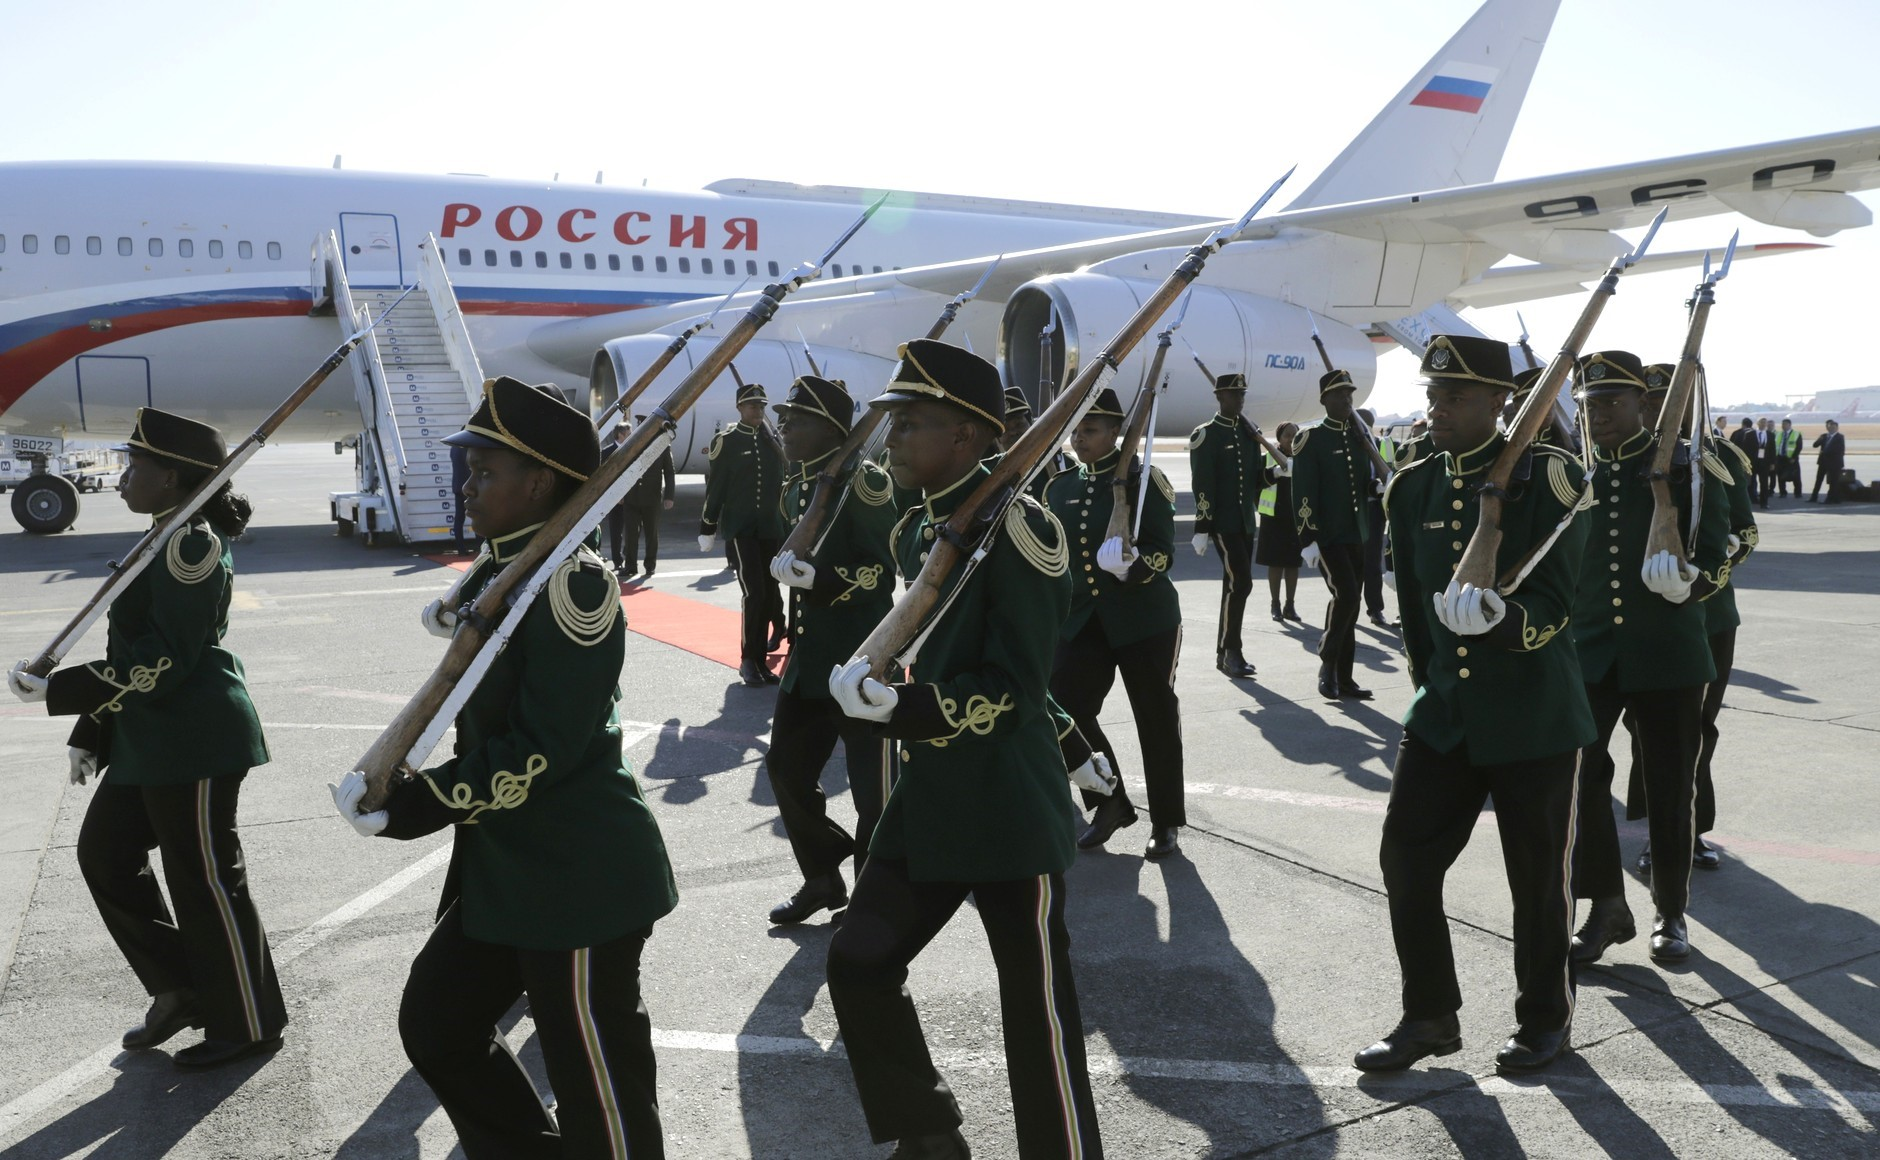 Russia in Africa: Weapons, Mercenaries, Spin Doctors.